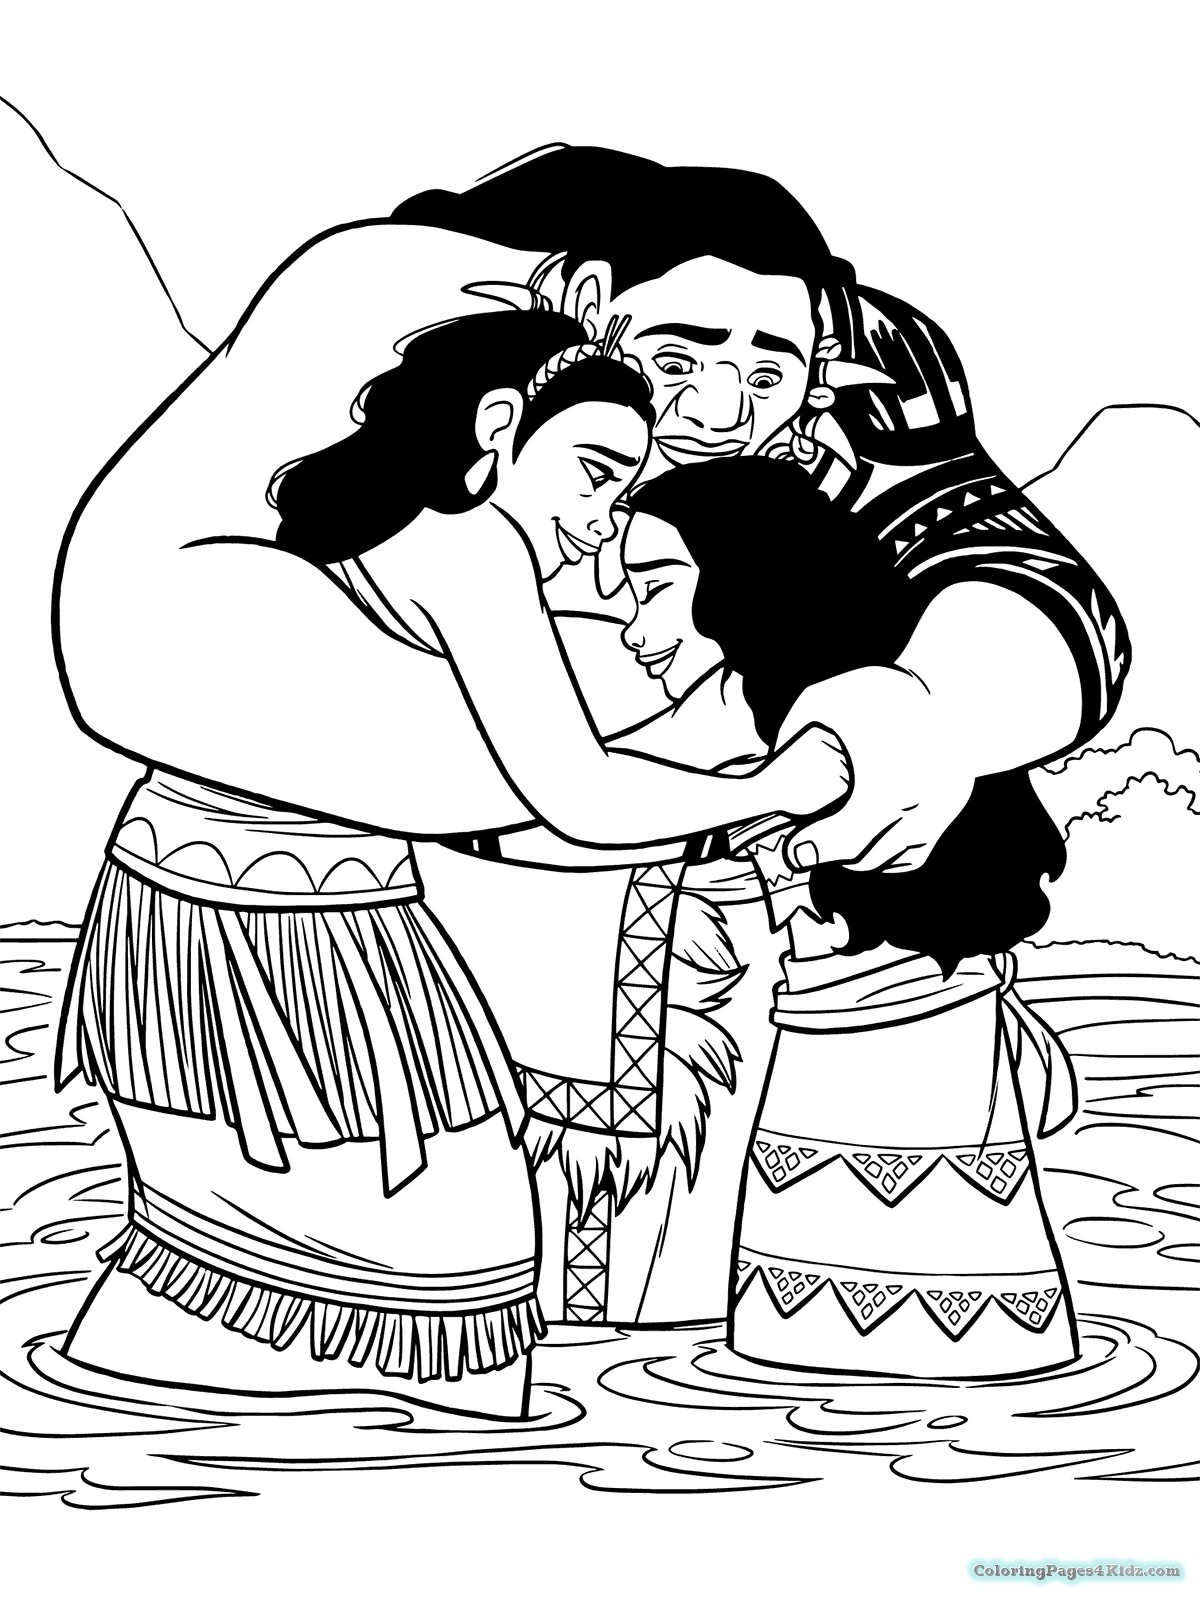 image about Moana Printable Coloring Pages called Moana Printable Coloring Internet pages The Reality With regards to Moana